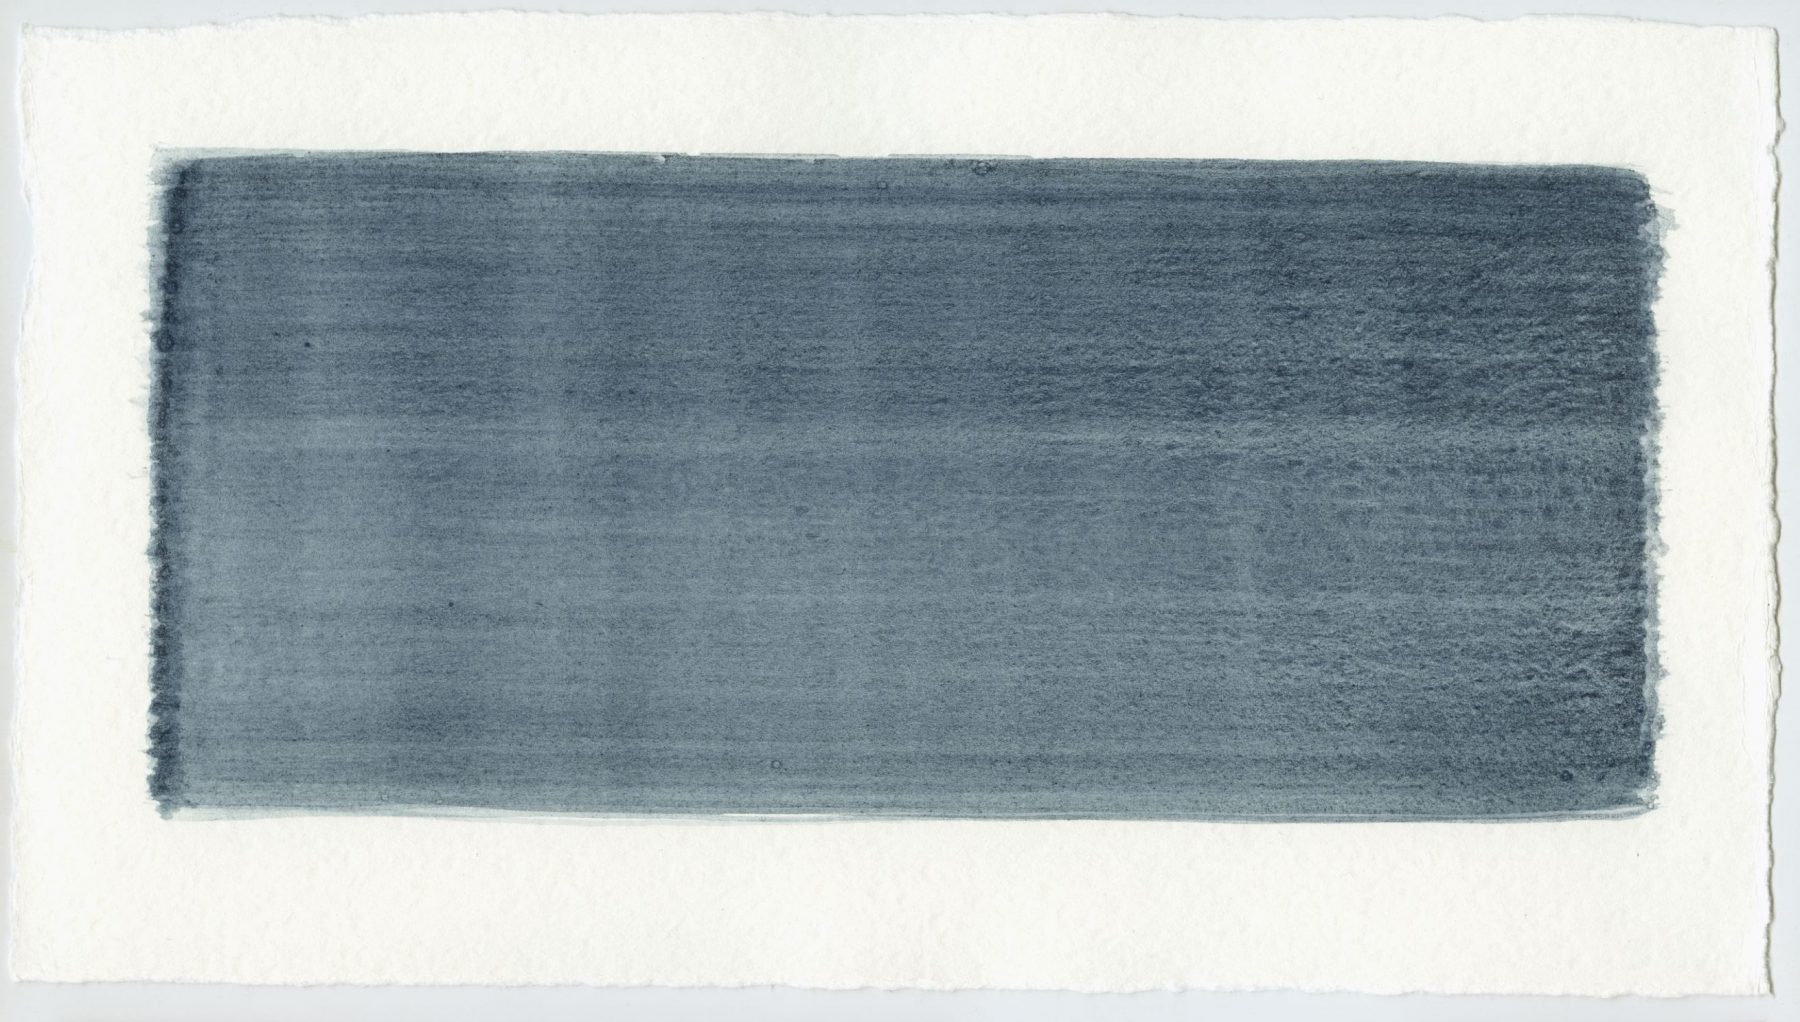 Brush stroke no. 94 - Pigment: Vivianiet (from Kremer Pigmente)